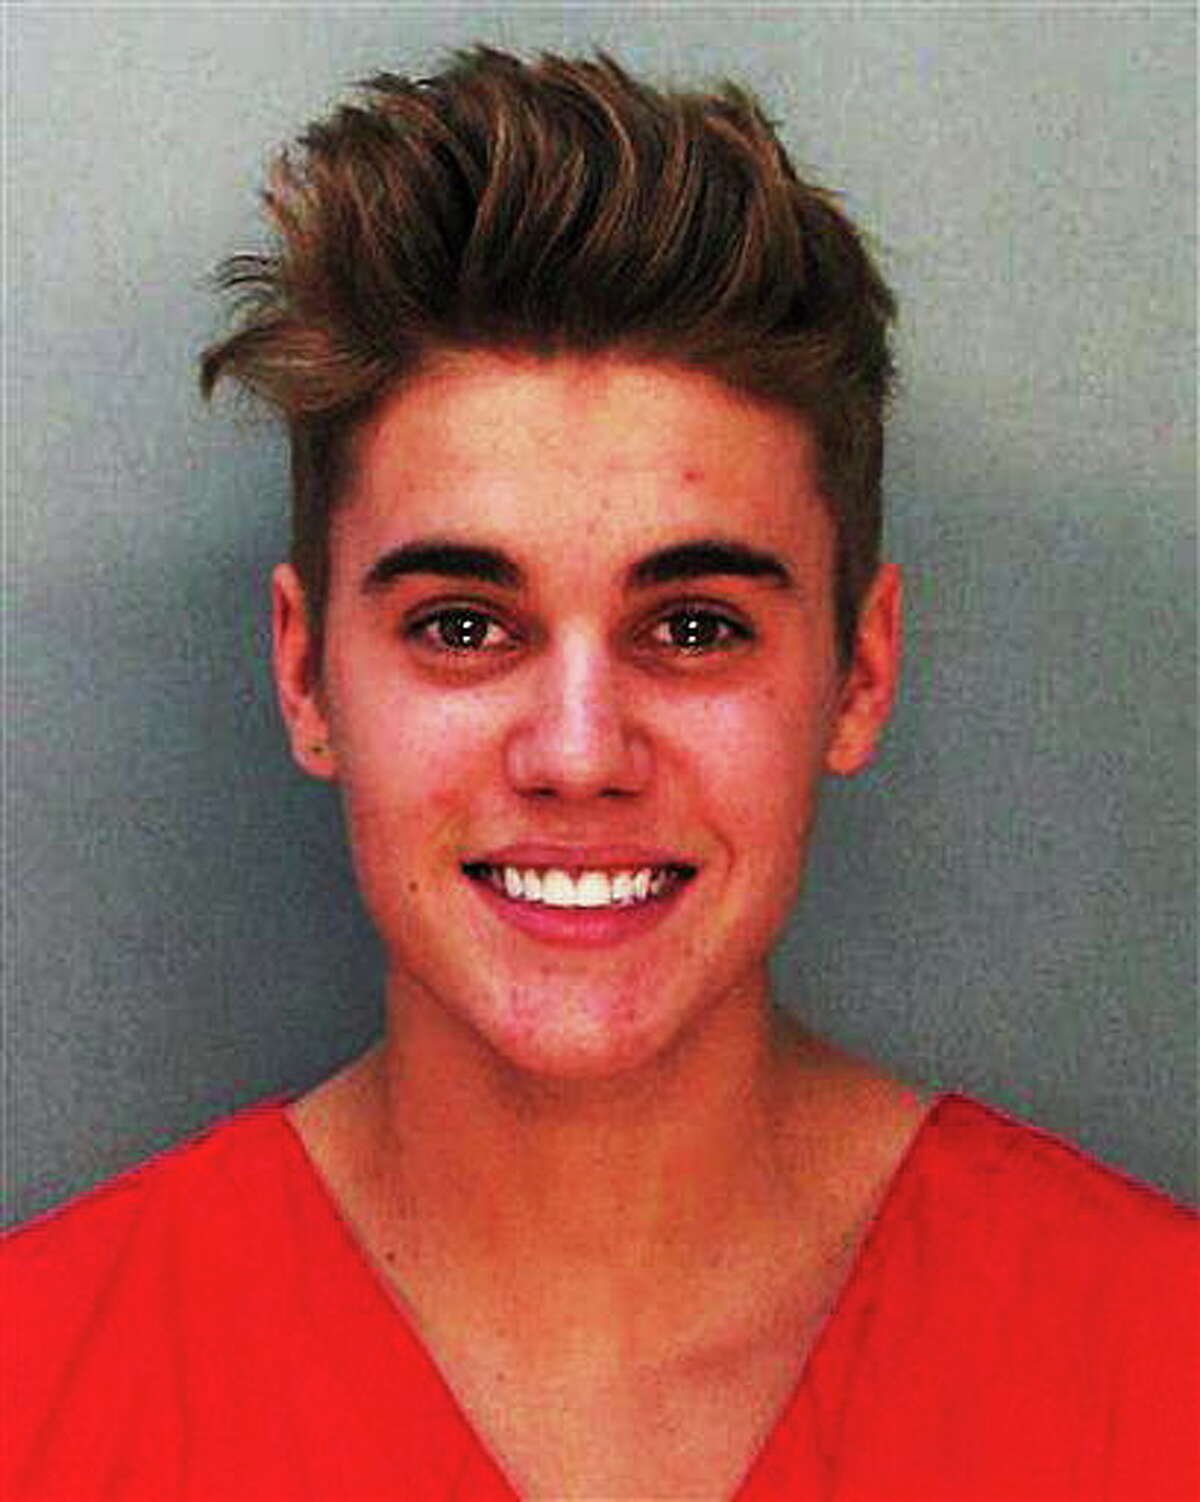 This police booking mug made available by the Miami Dade County Corrections Department shows pop star Justin Bieber, Thursday, Jan. 23, 2014. Bieber and singer Khalil were arrested for allegedly drag-racing on a Miami Beach Street. Police say Bieber has been charged with resisting arrest without violence in addition to drag racing and DUI. Police also say the singer told authorities he had consumed alcohol, smoked marijuana and taken prescription drugs. (AP Photo/Miami Dade County Jail)